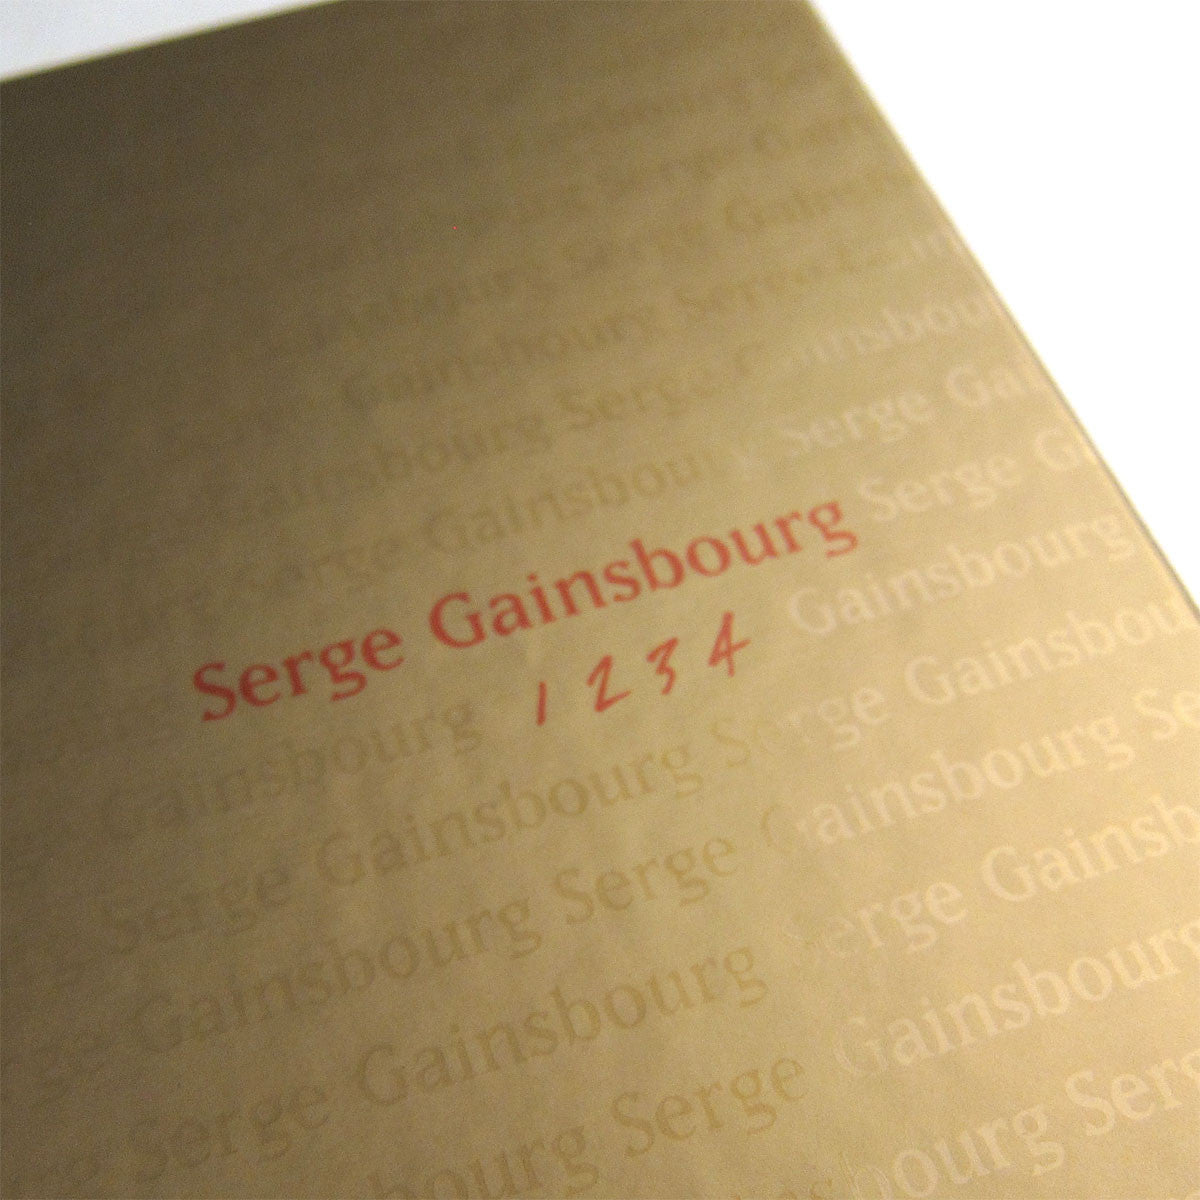 Serge Gainsbourg: 1 2 3 4  (Colored Vinyl) Vinyl Boxset 2LP close up